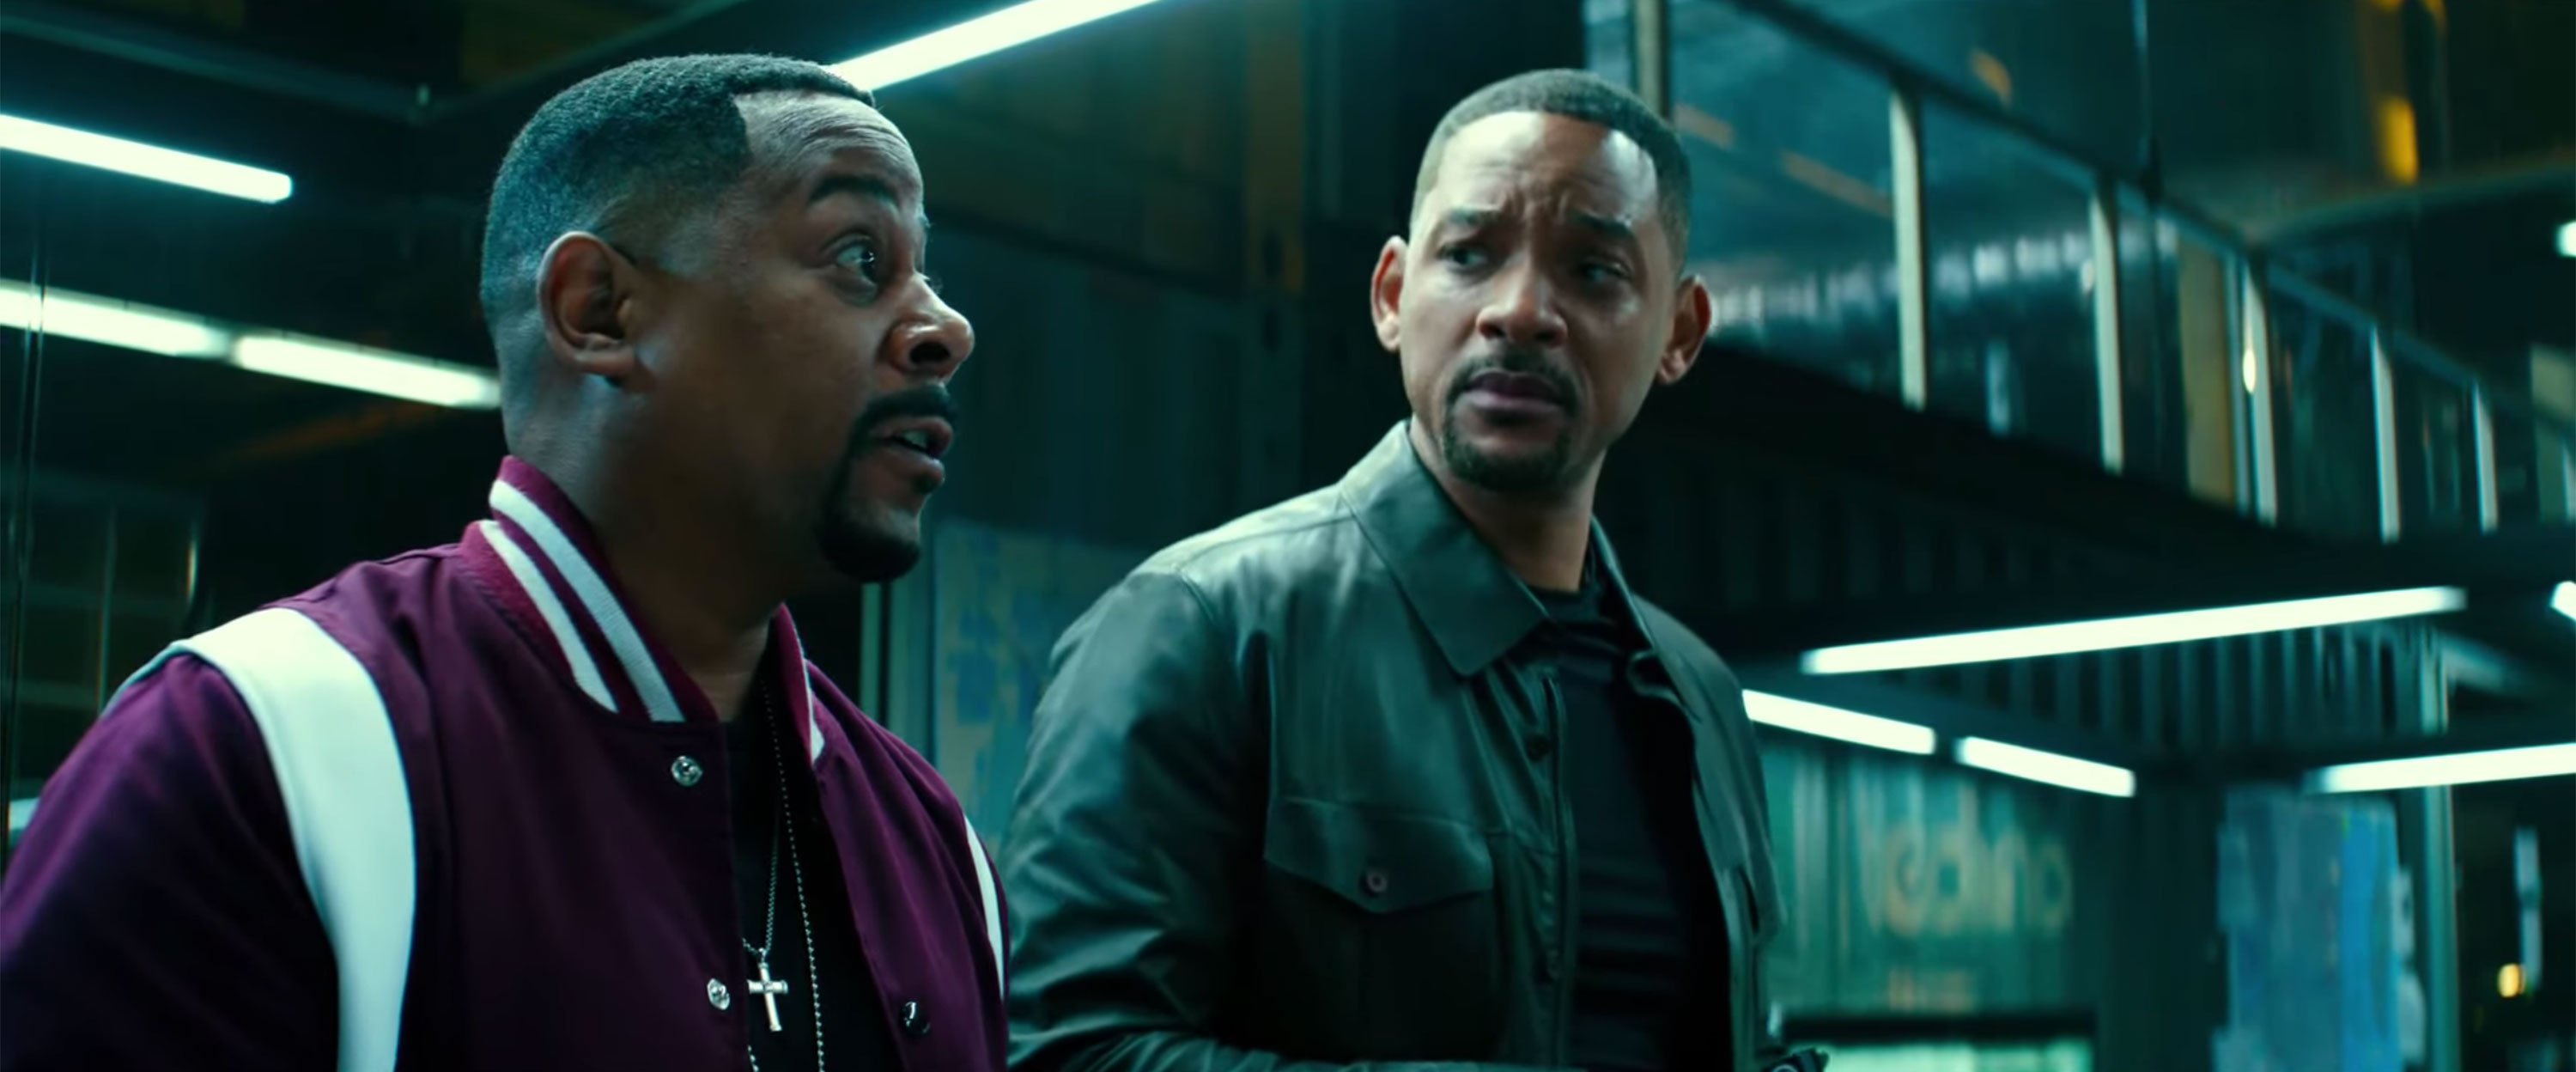 Will Smith y Martin Lawrence regresan en primer tráiler oficial de Bad Boys for Life